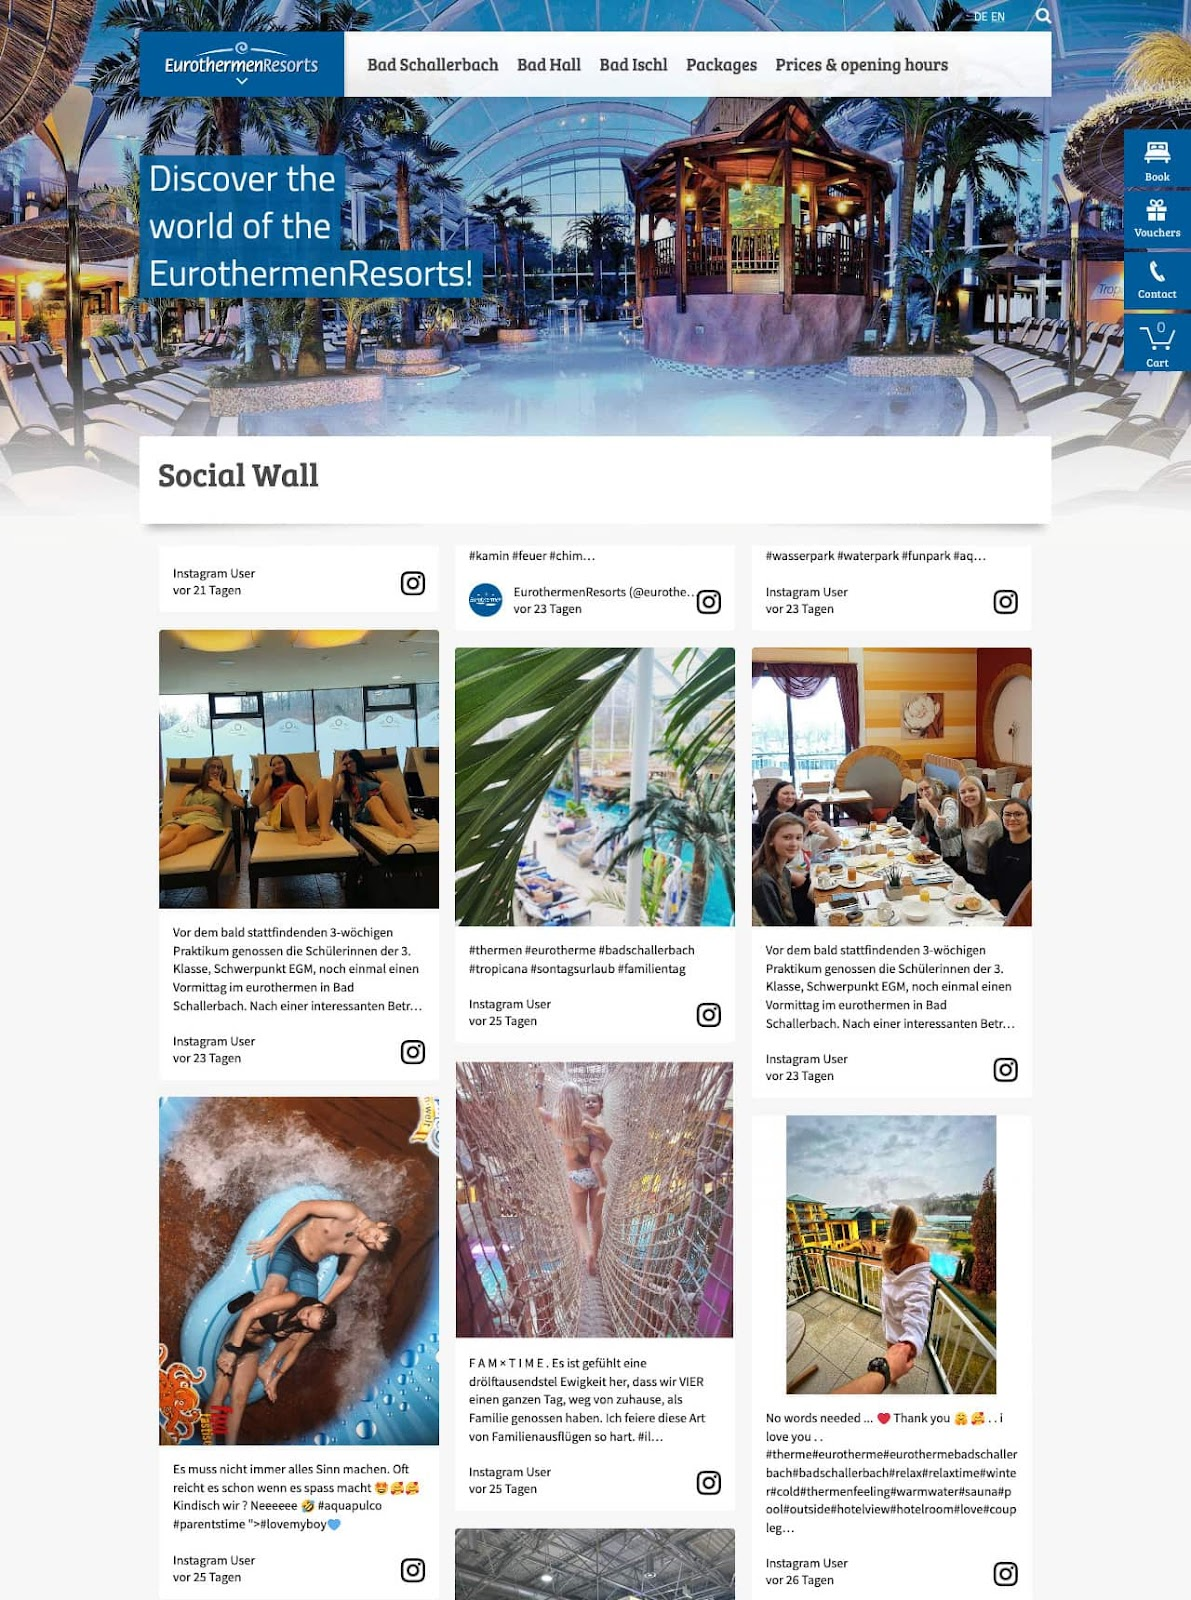 Screenshot of Eurotherme's social media wall. The image shows different photos from guests enjoying the facilities.